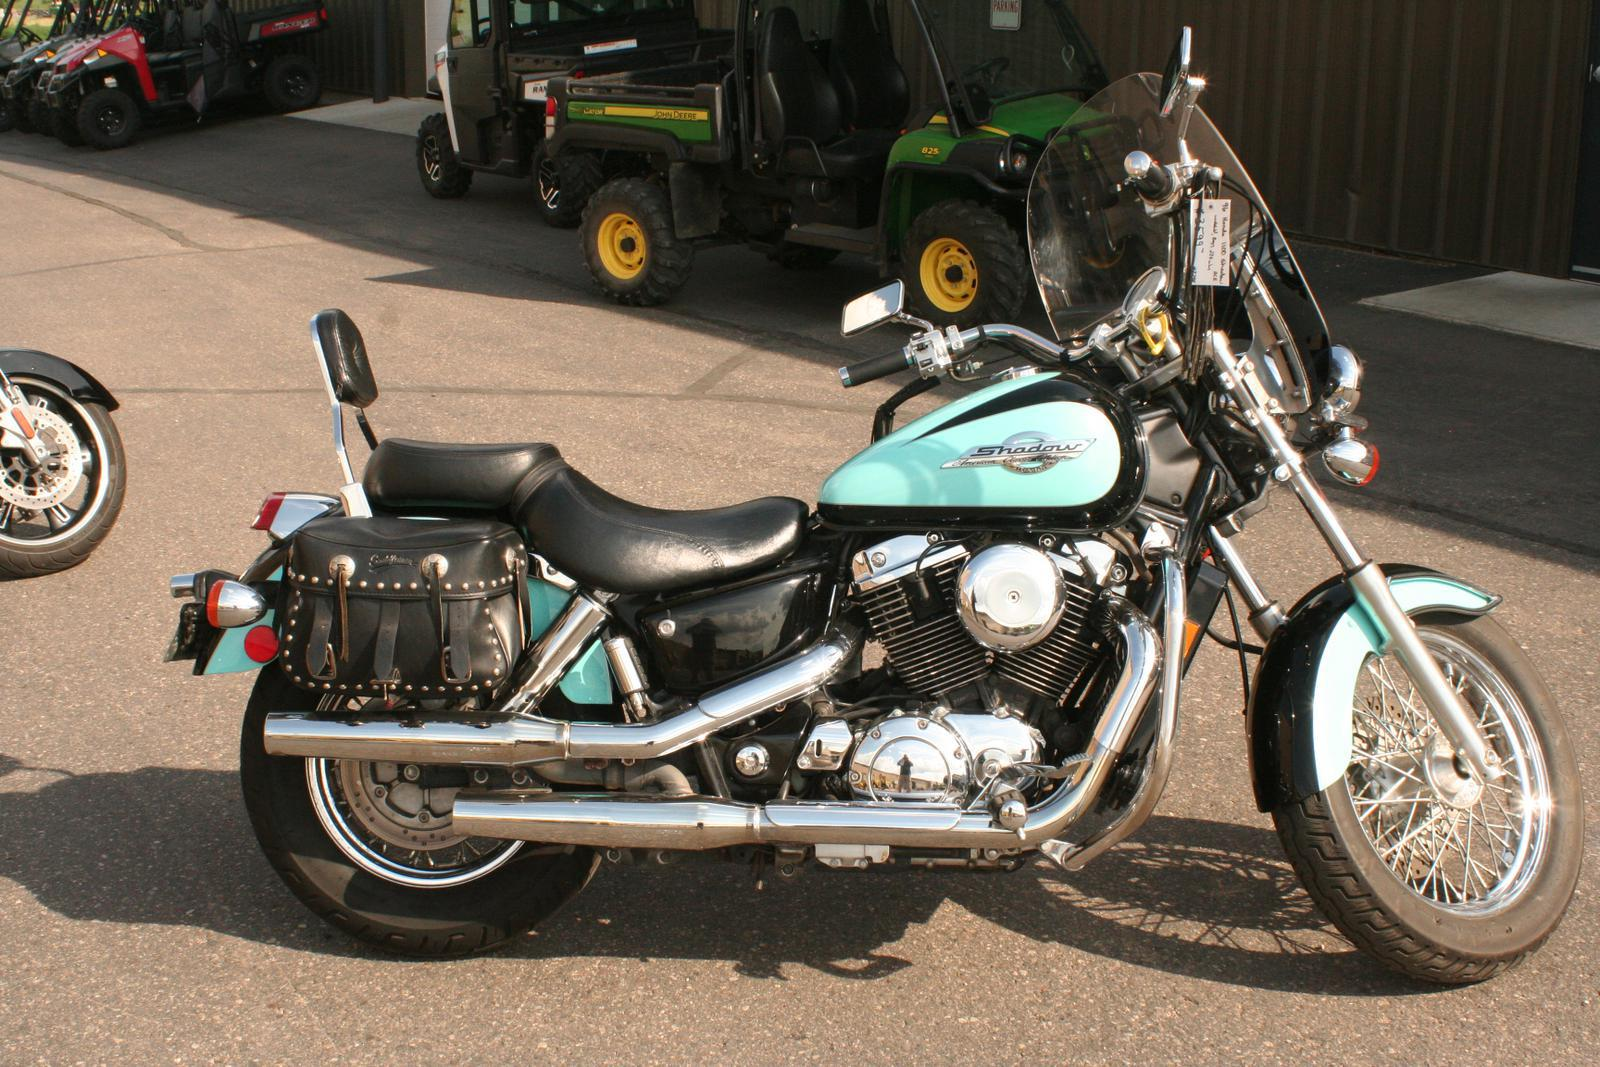 1996 Honda Shadow 1100 ACE, Cycle Trader Used Motorcycles Price